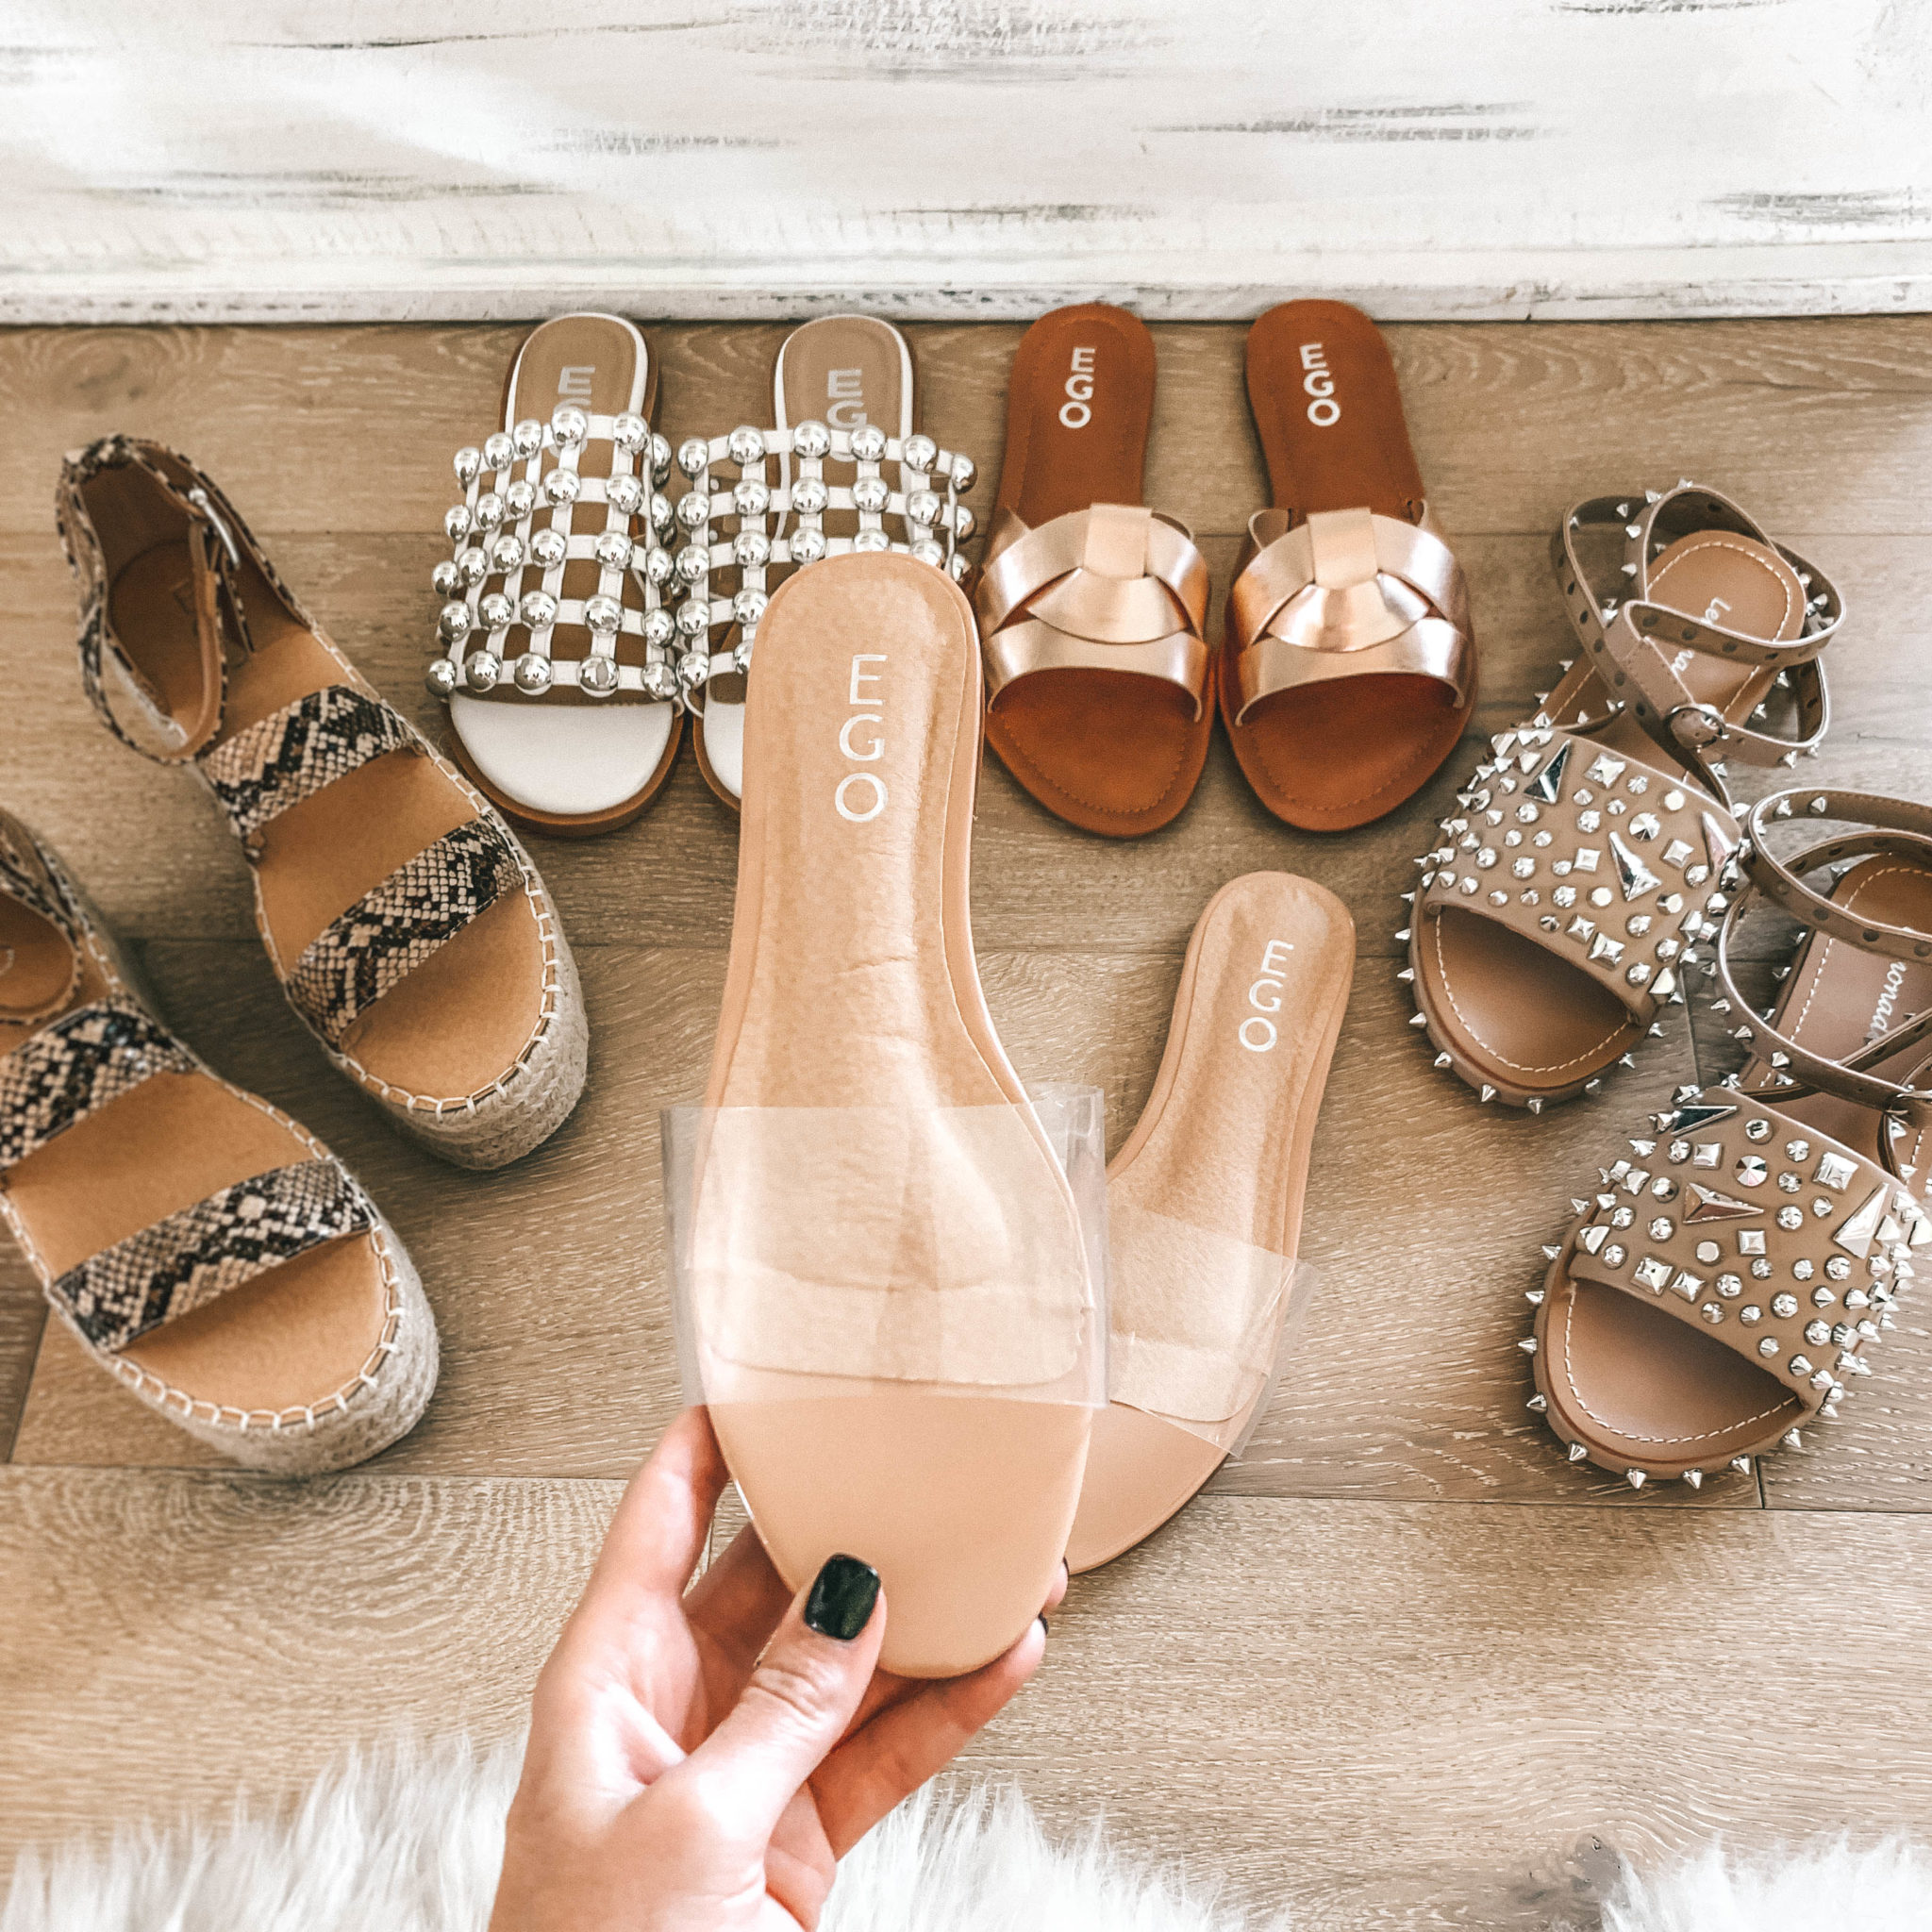 5 Must Have Affordable EGO Sandals for Summer by popular Austin fashion blog, Dressed to Kill: image of woman holding EGO sandals Kerrie Perspex Sandal In Nude Patent.